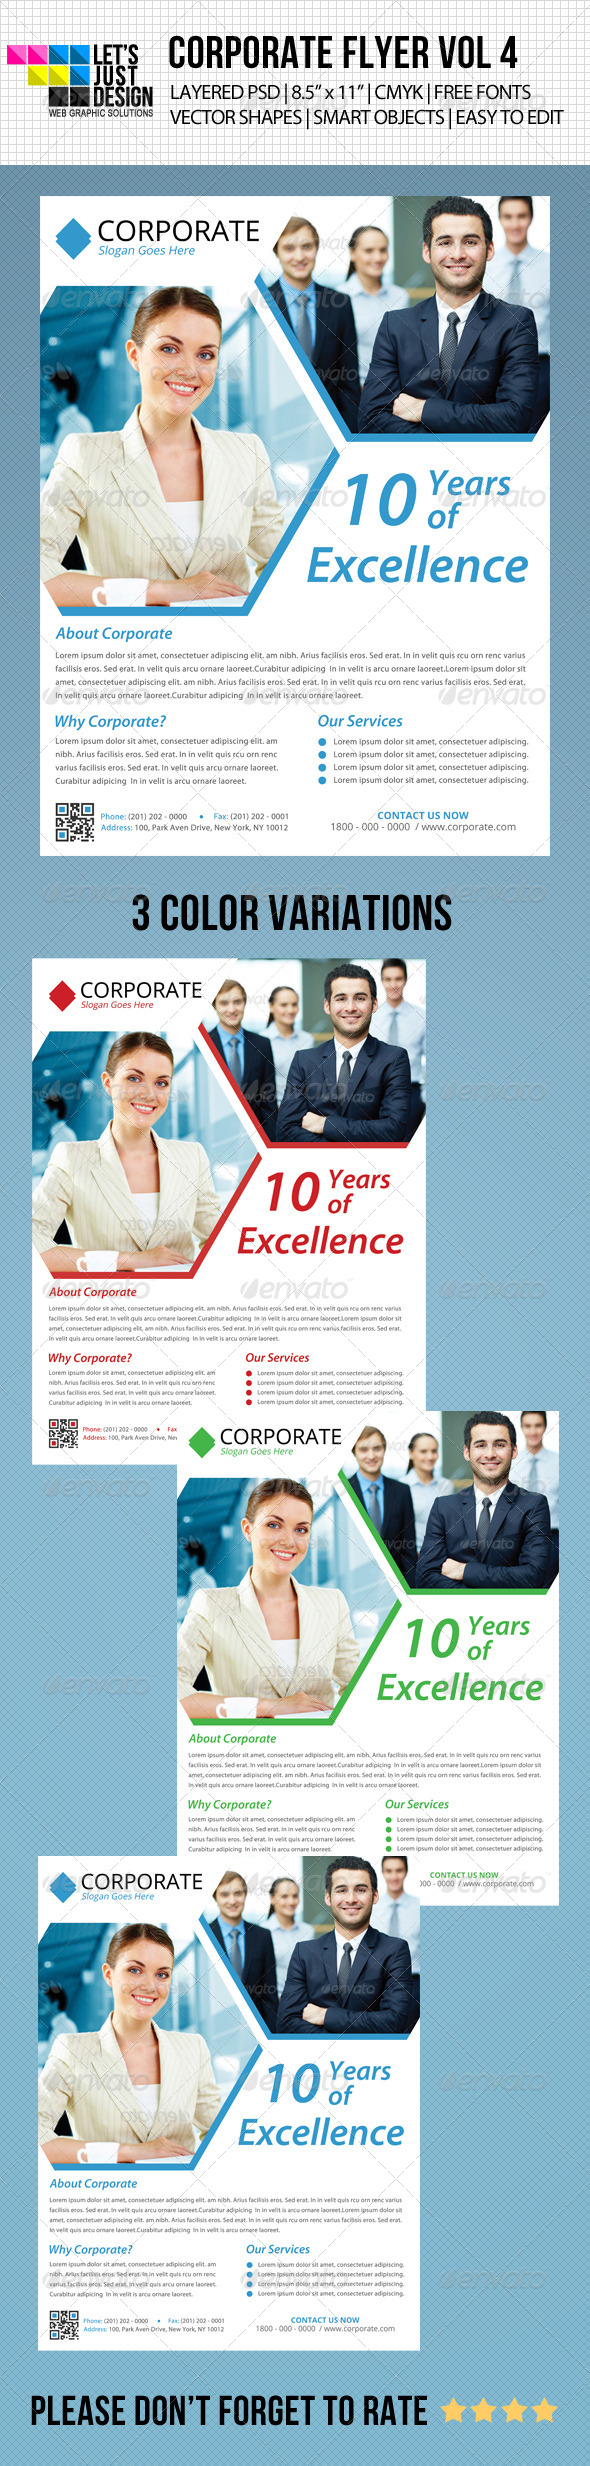 Minimal Corporate Flyer Vol 4 - Corporate Flyers